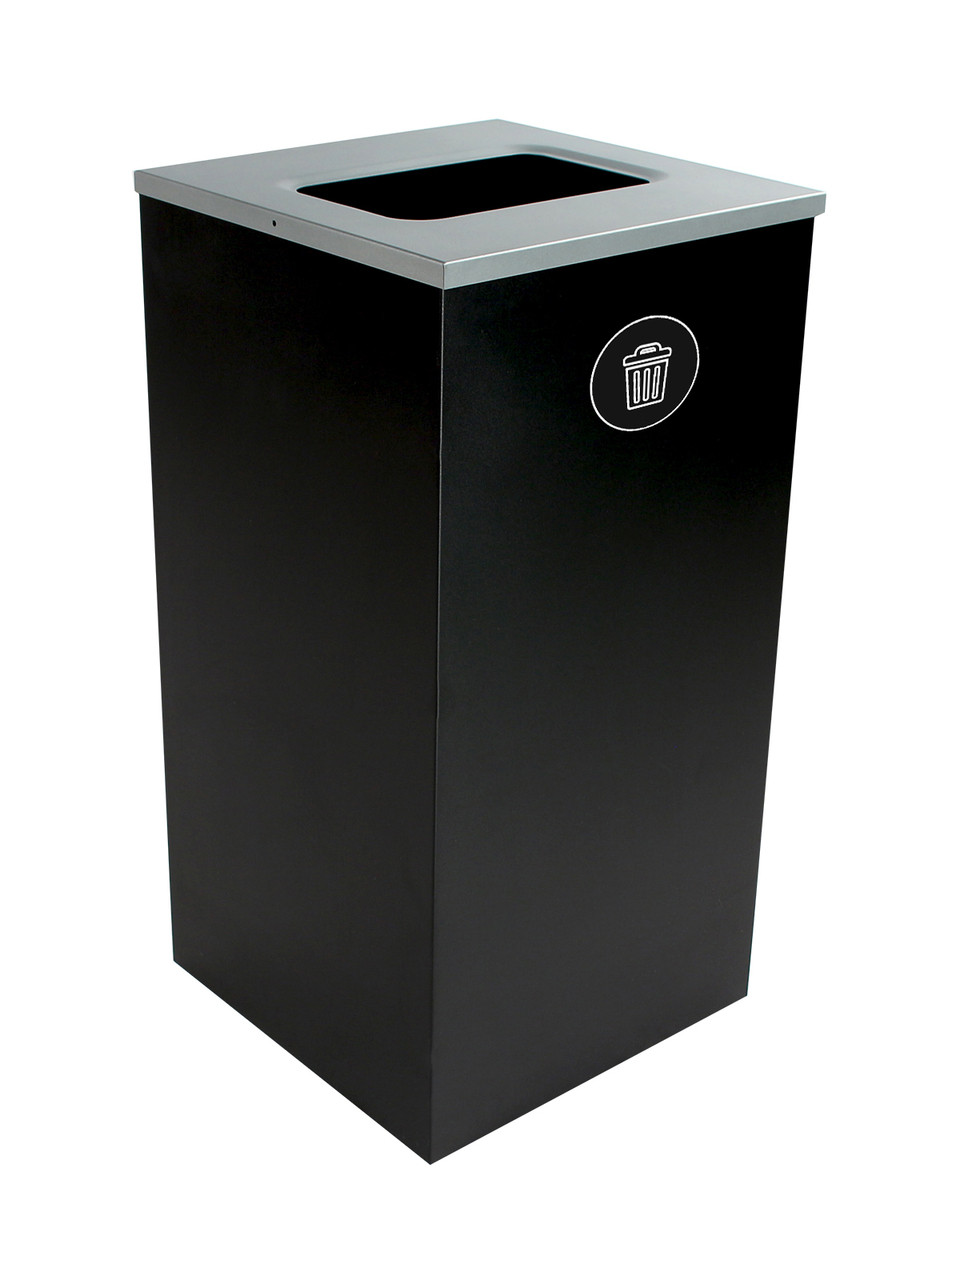 24 Gallon Steel Spectrum Cube Square Waste Can Black 8107048-4